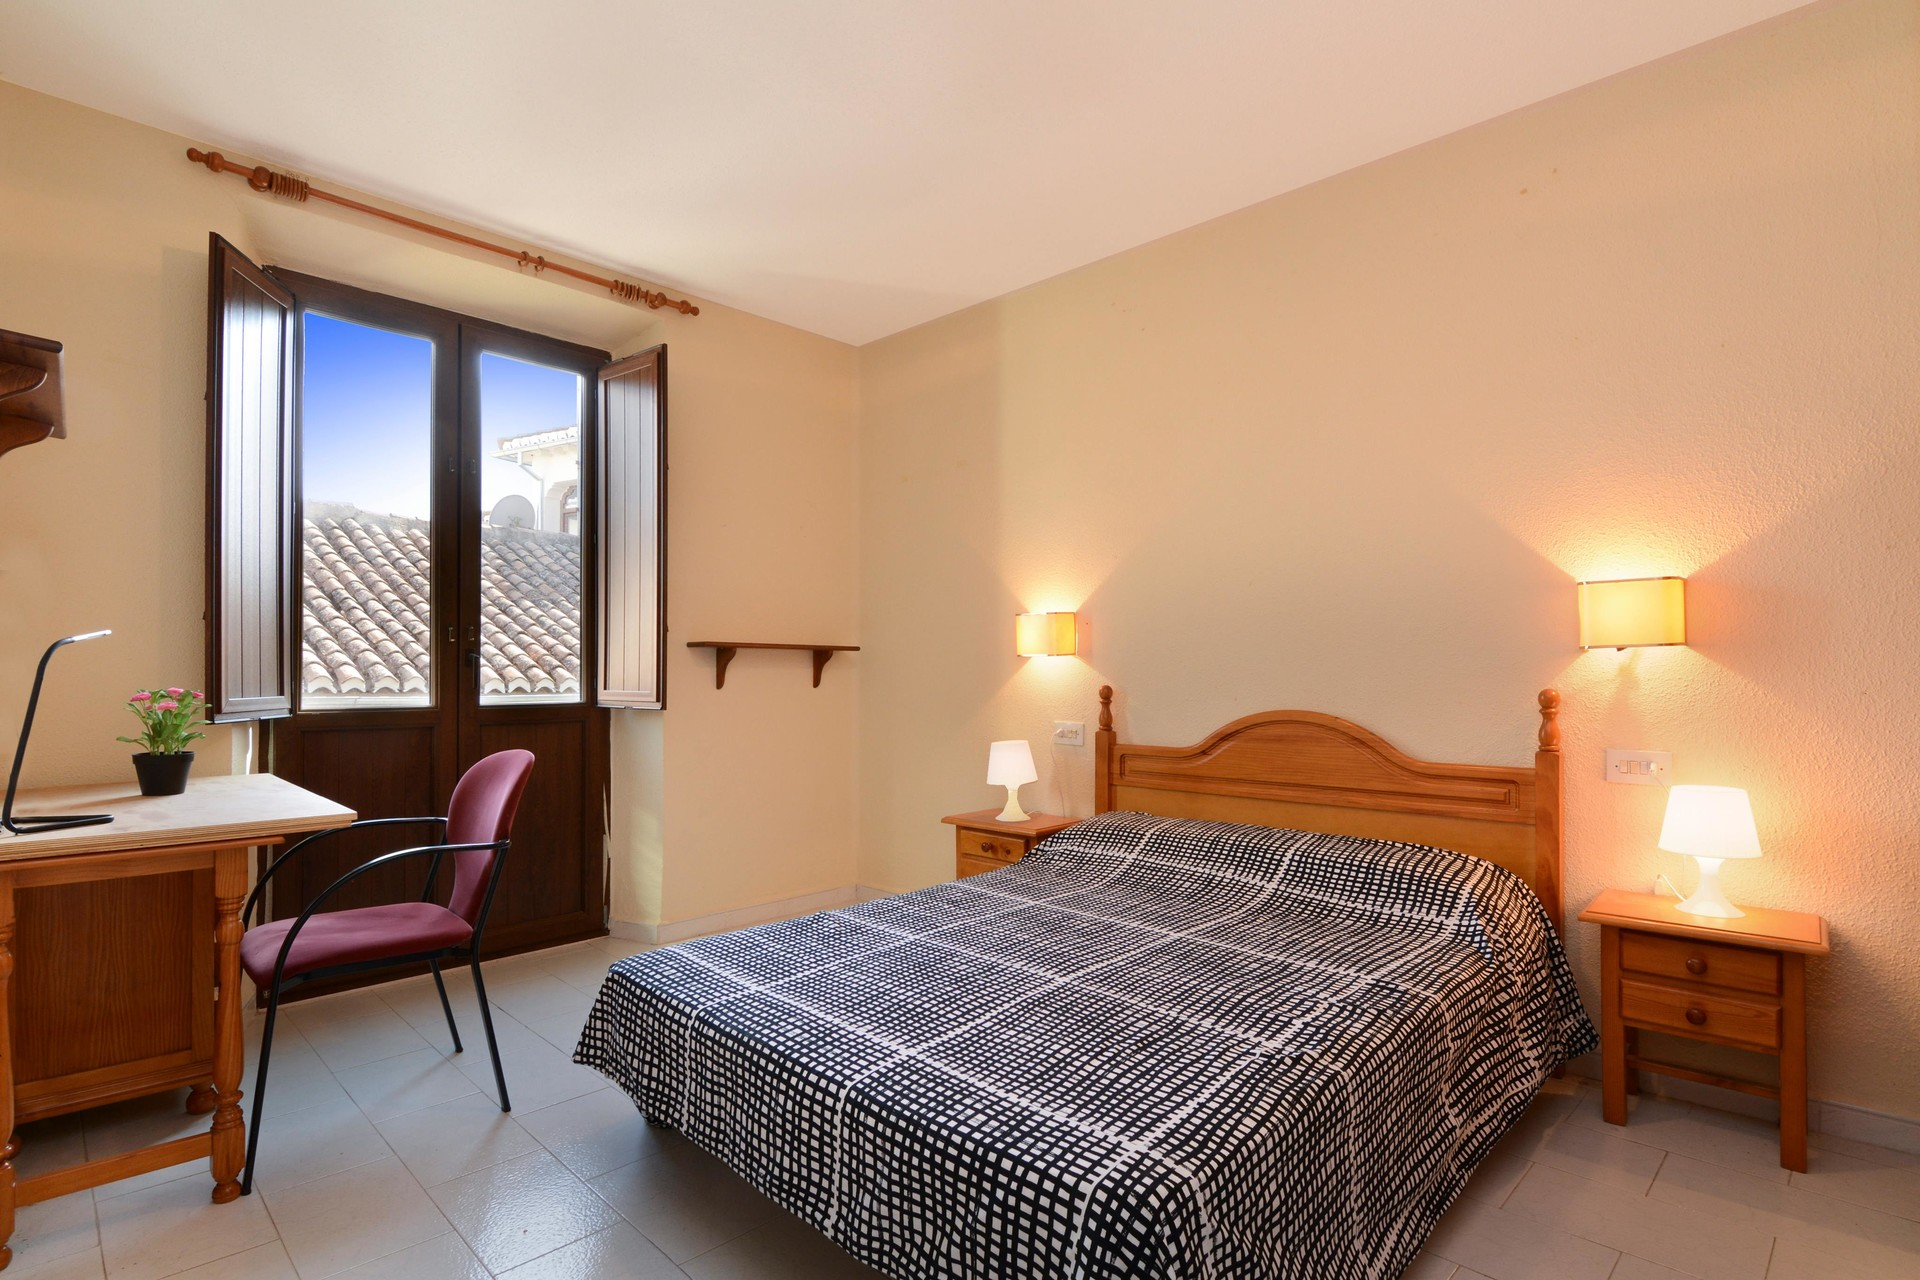 large-room-shared-flat-central-granada-ff1d60a09b52b1a6e35f06ff06efbb60